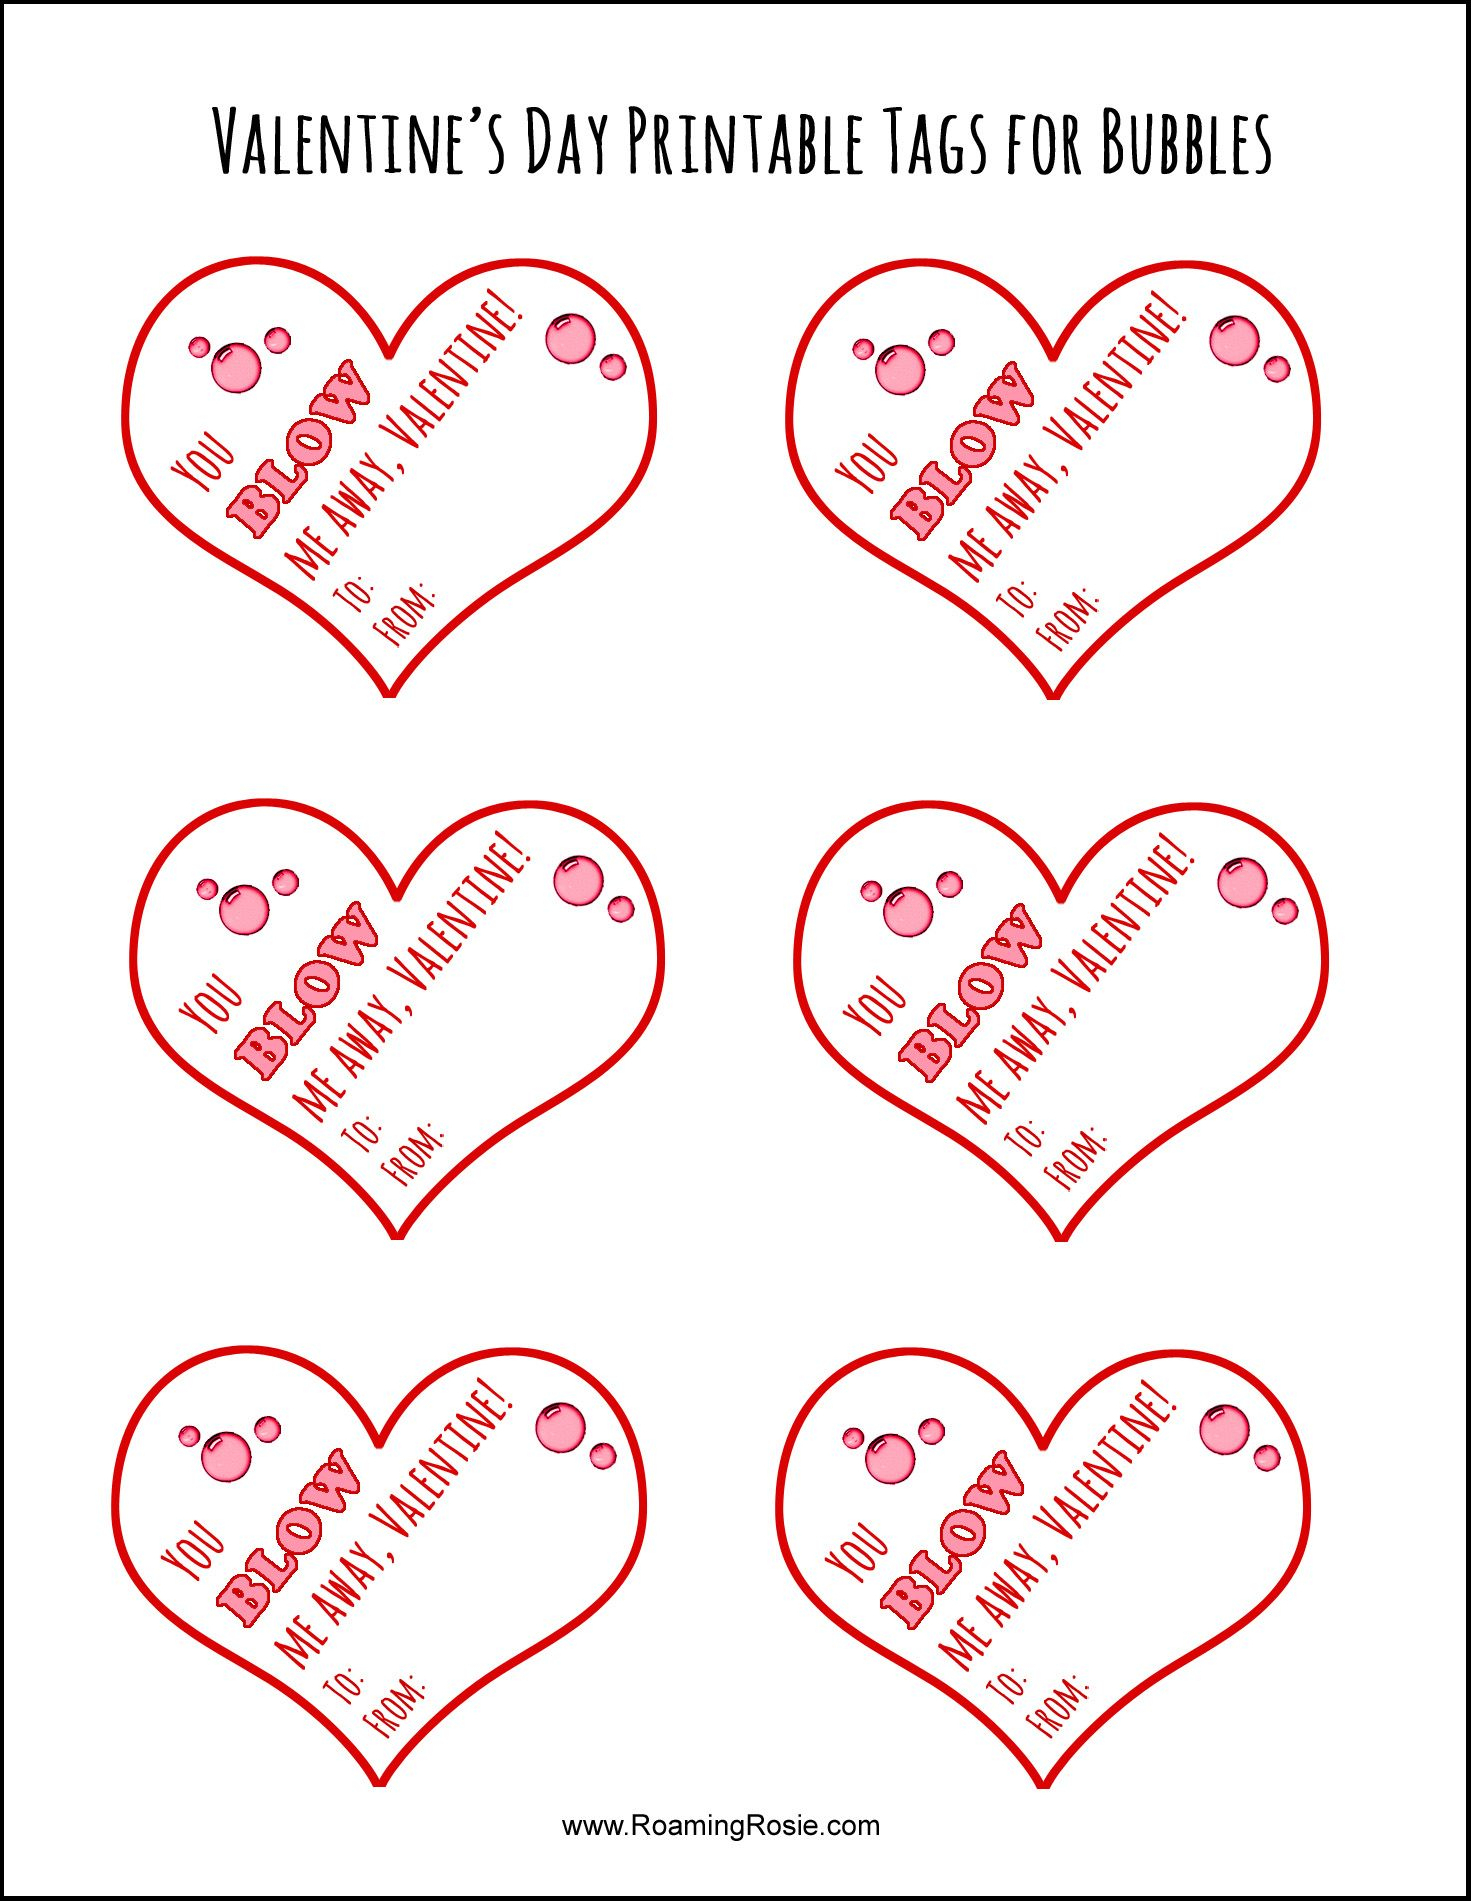 Free Printable Valentine's Day Tags For Bubbles   Valentine's Day - Free Printable Valentines Day Tags